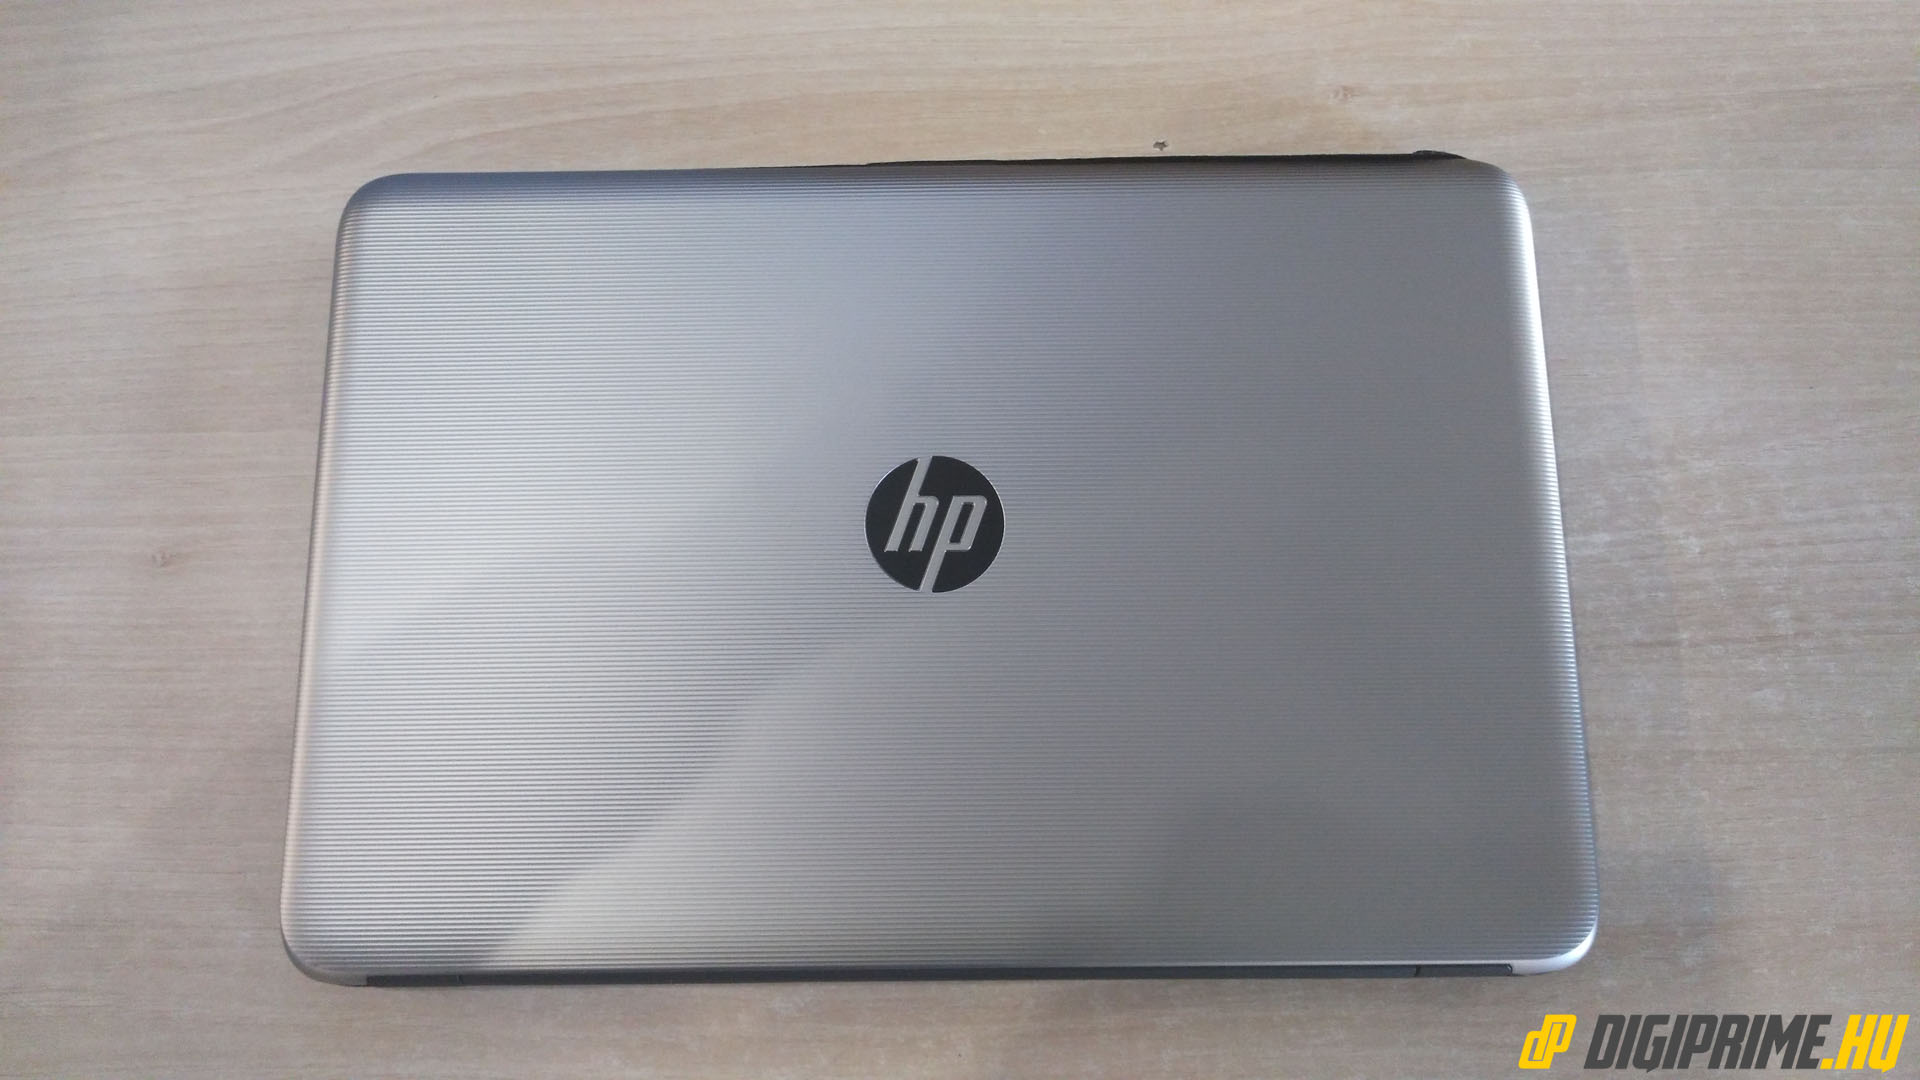 hp 15 03 digiprime.hu